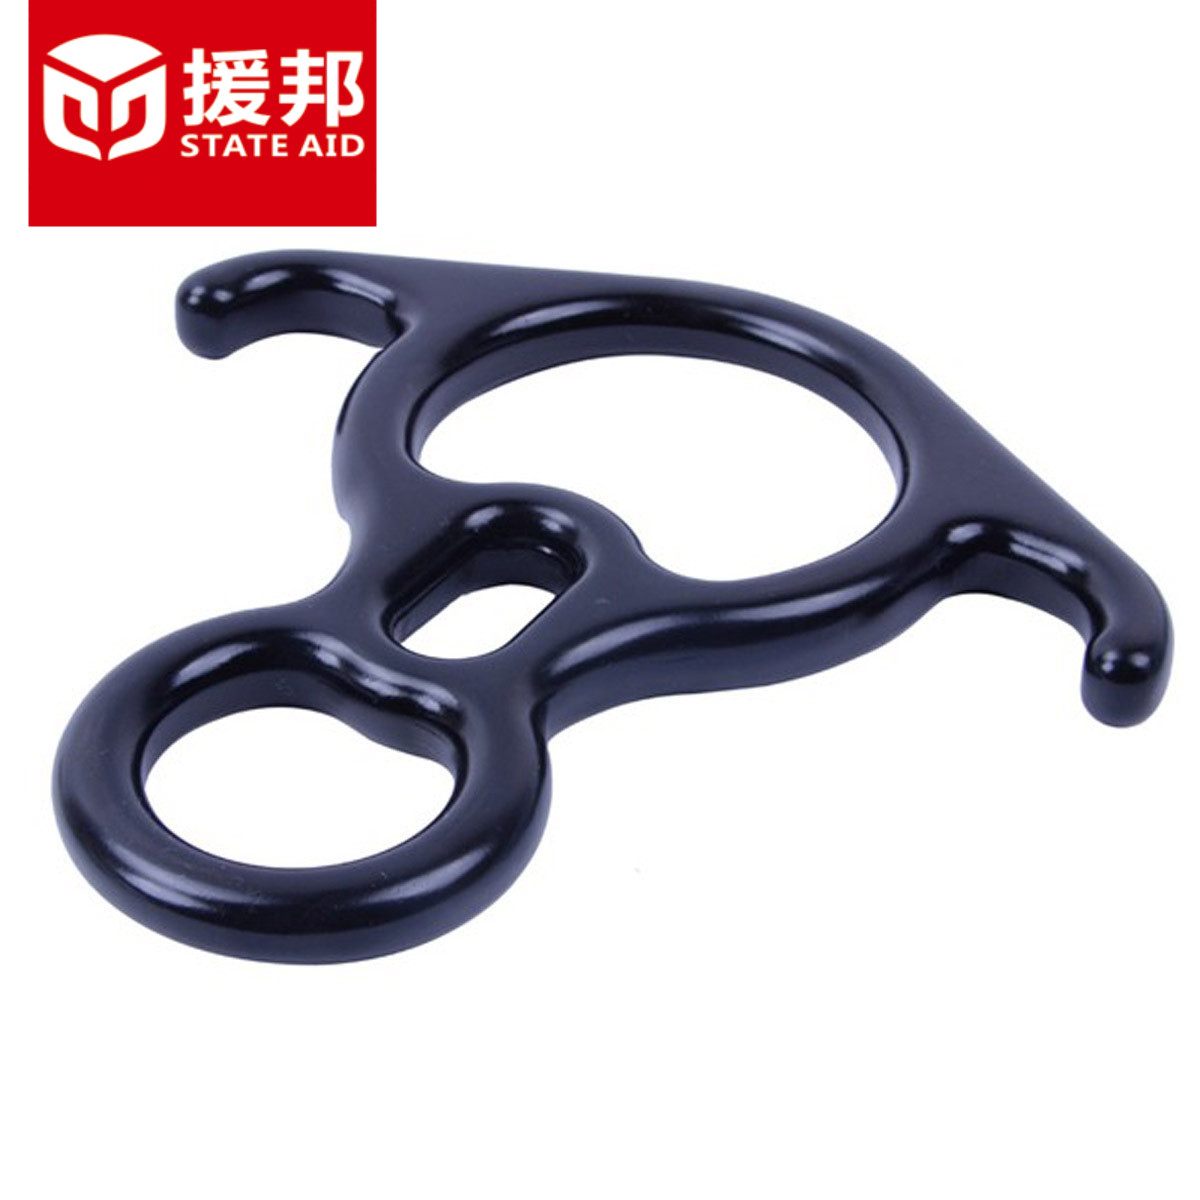 Aidang descending descender 8 word loop descender climbing horns eight character ring 8 word descending horn 8 word ring horn ring